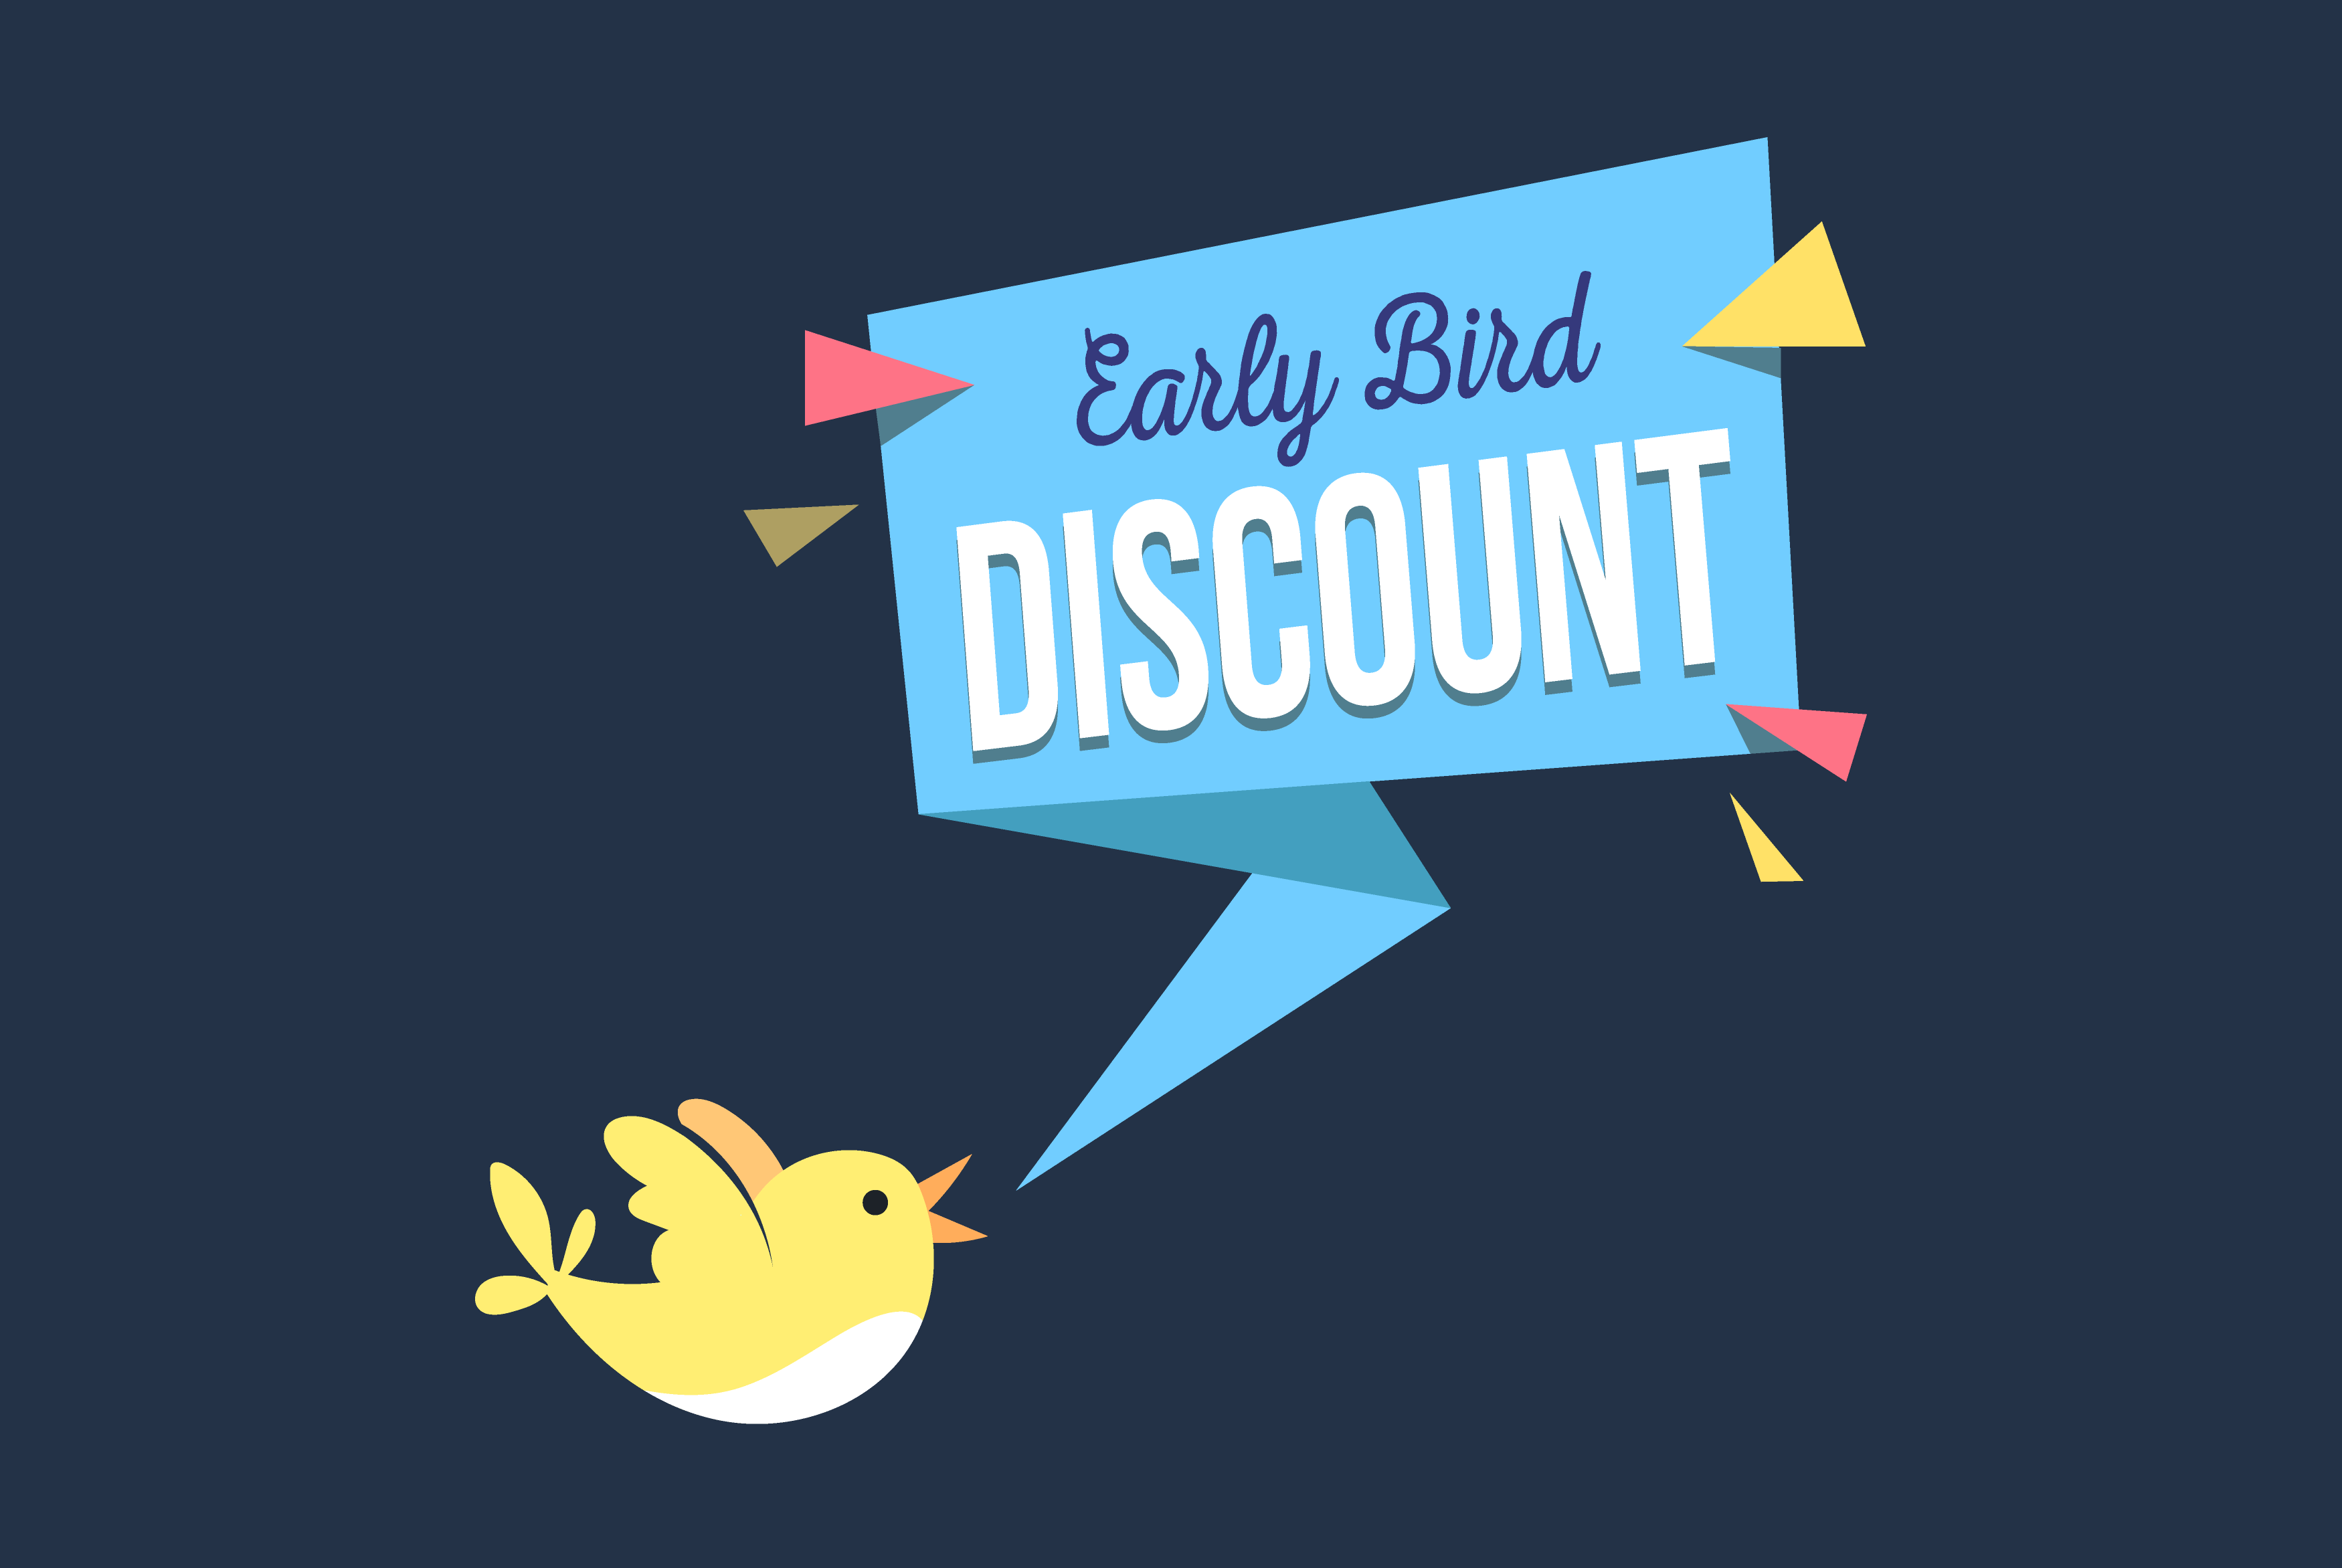 congress early-bird discount image